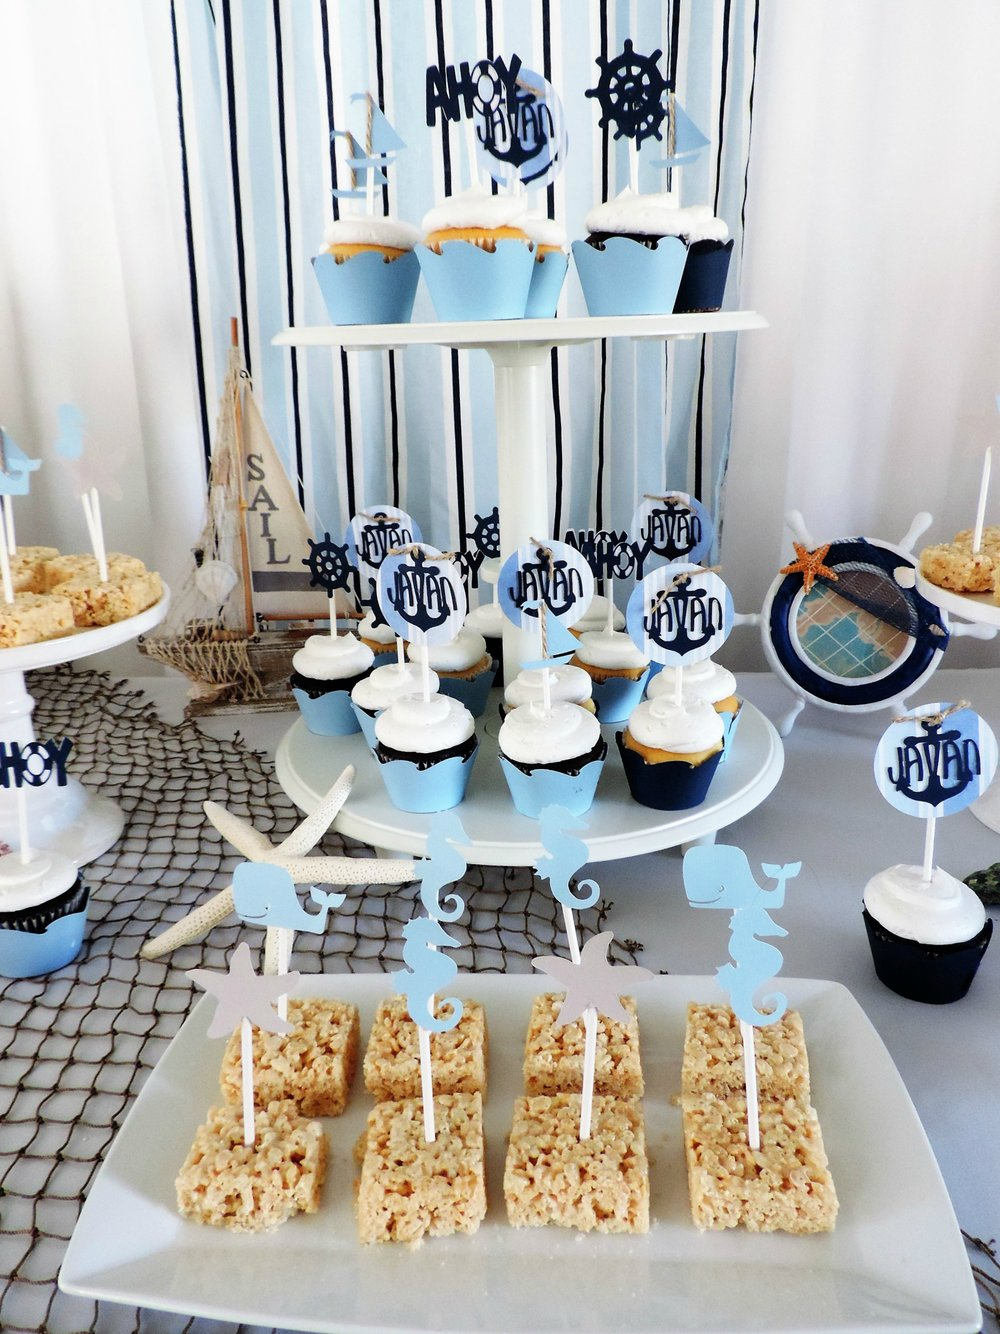 Nautical baby shower-nautical baby boy baby shower-nautical shower-nautical dessert table-nautical baby shower ideas-boy baby shower-www.sugarpartiesla.com.jpg